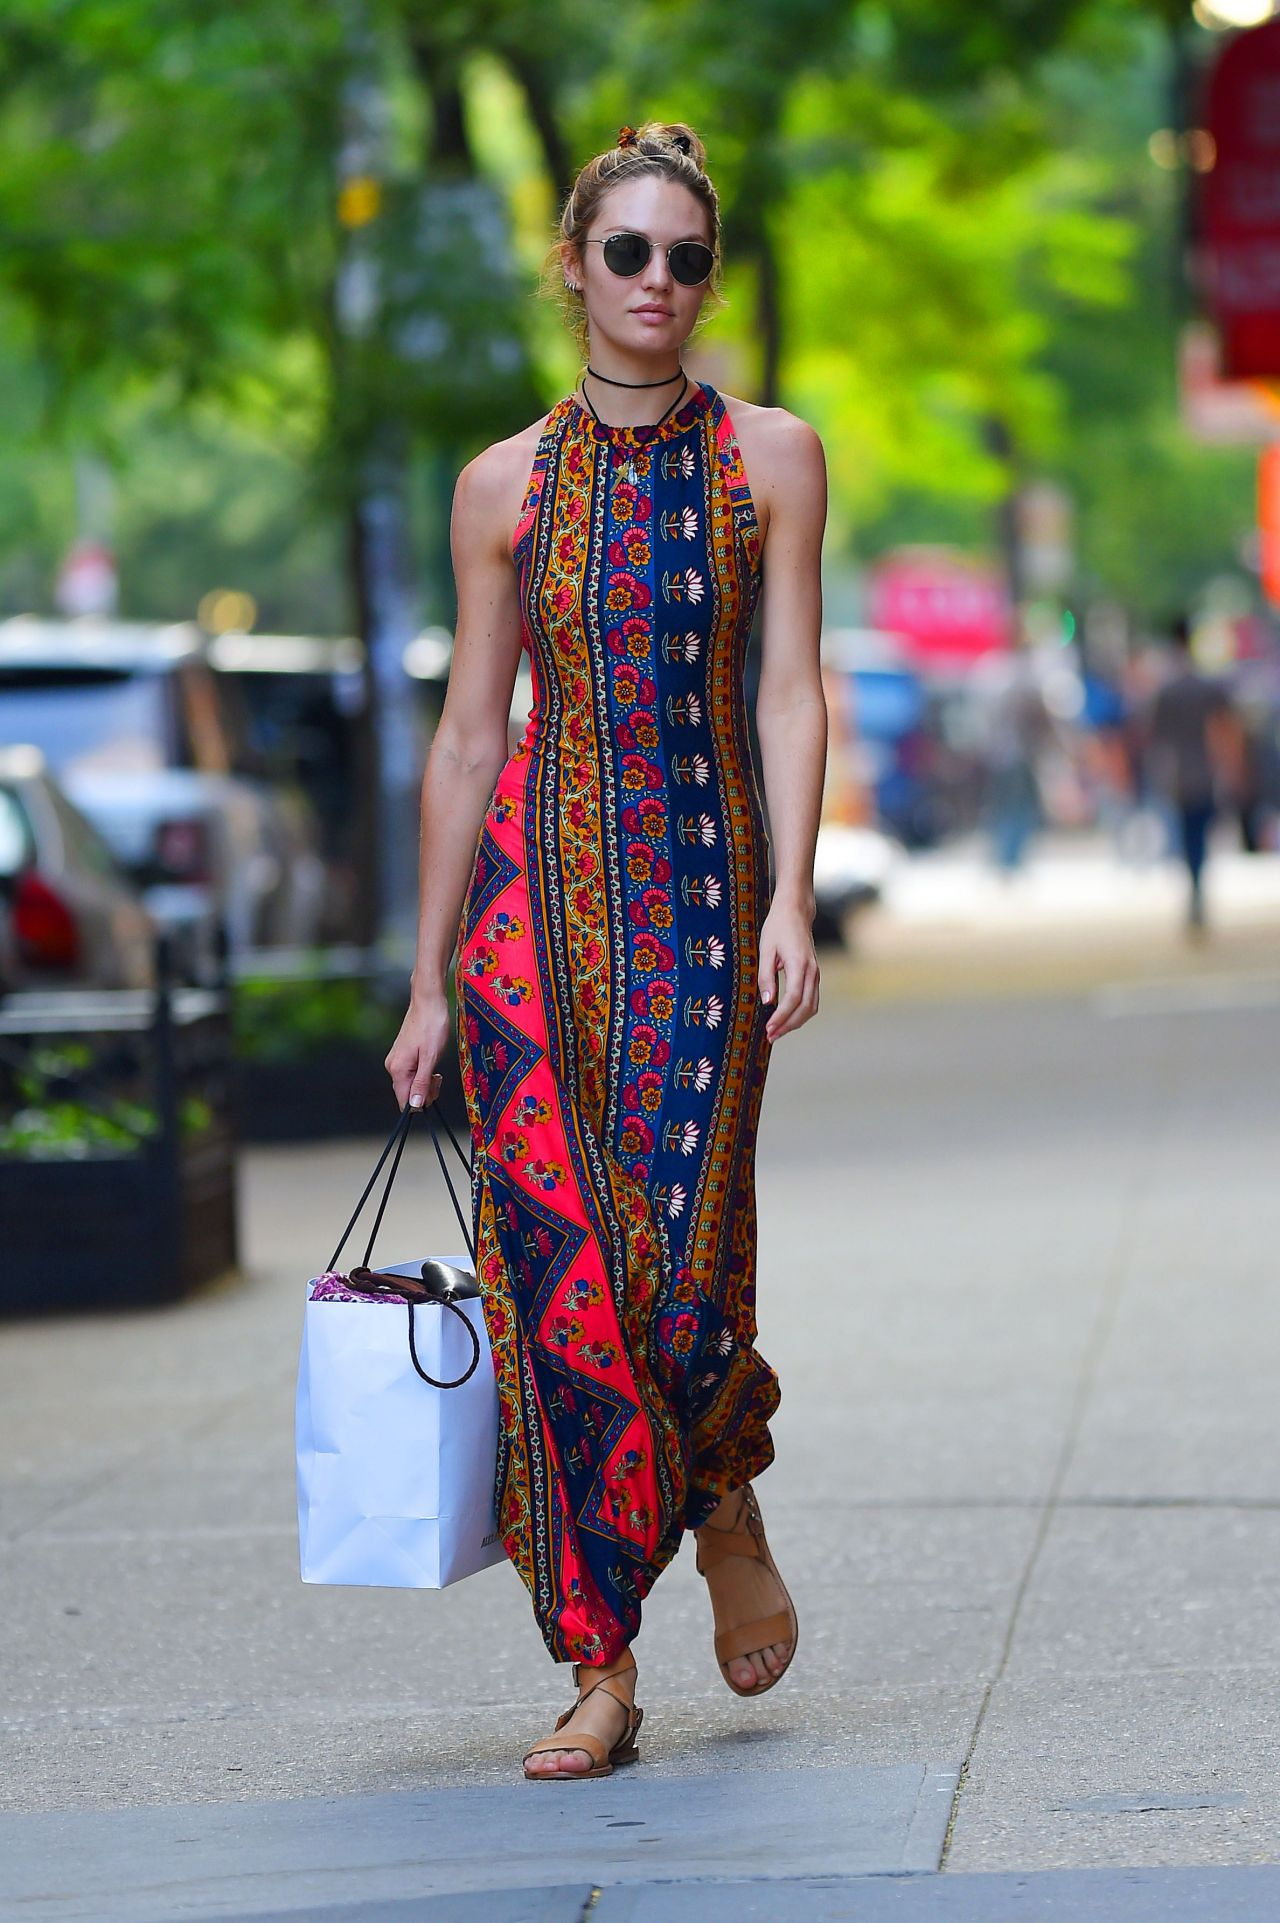 Candice Swanepoel in Stylish Summer Long Dress- Out in NYC - July 2014